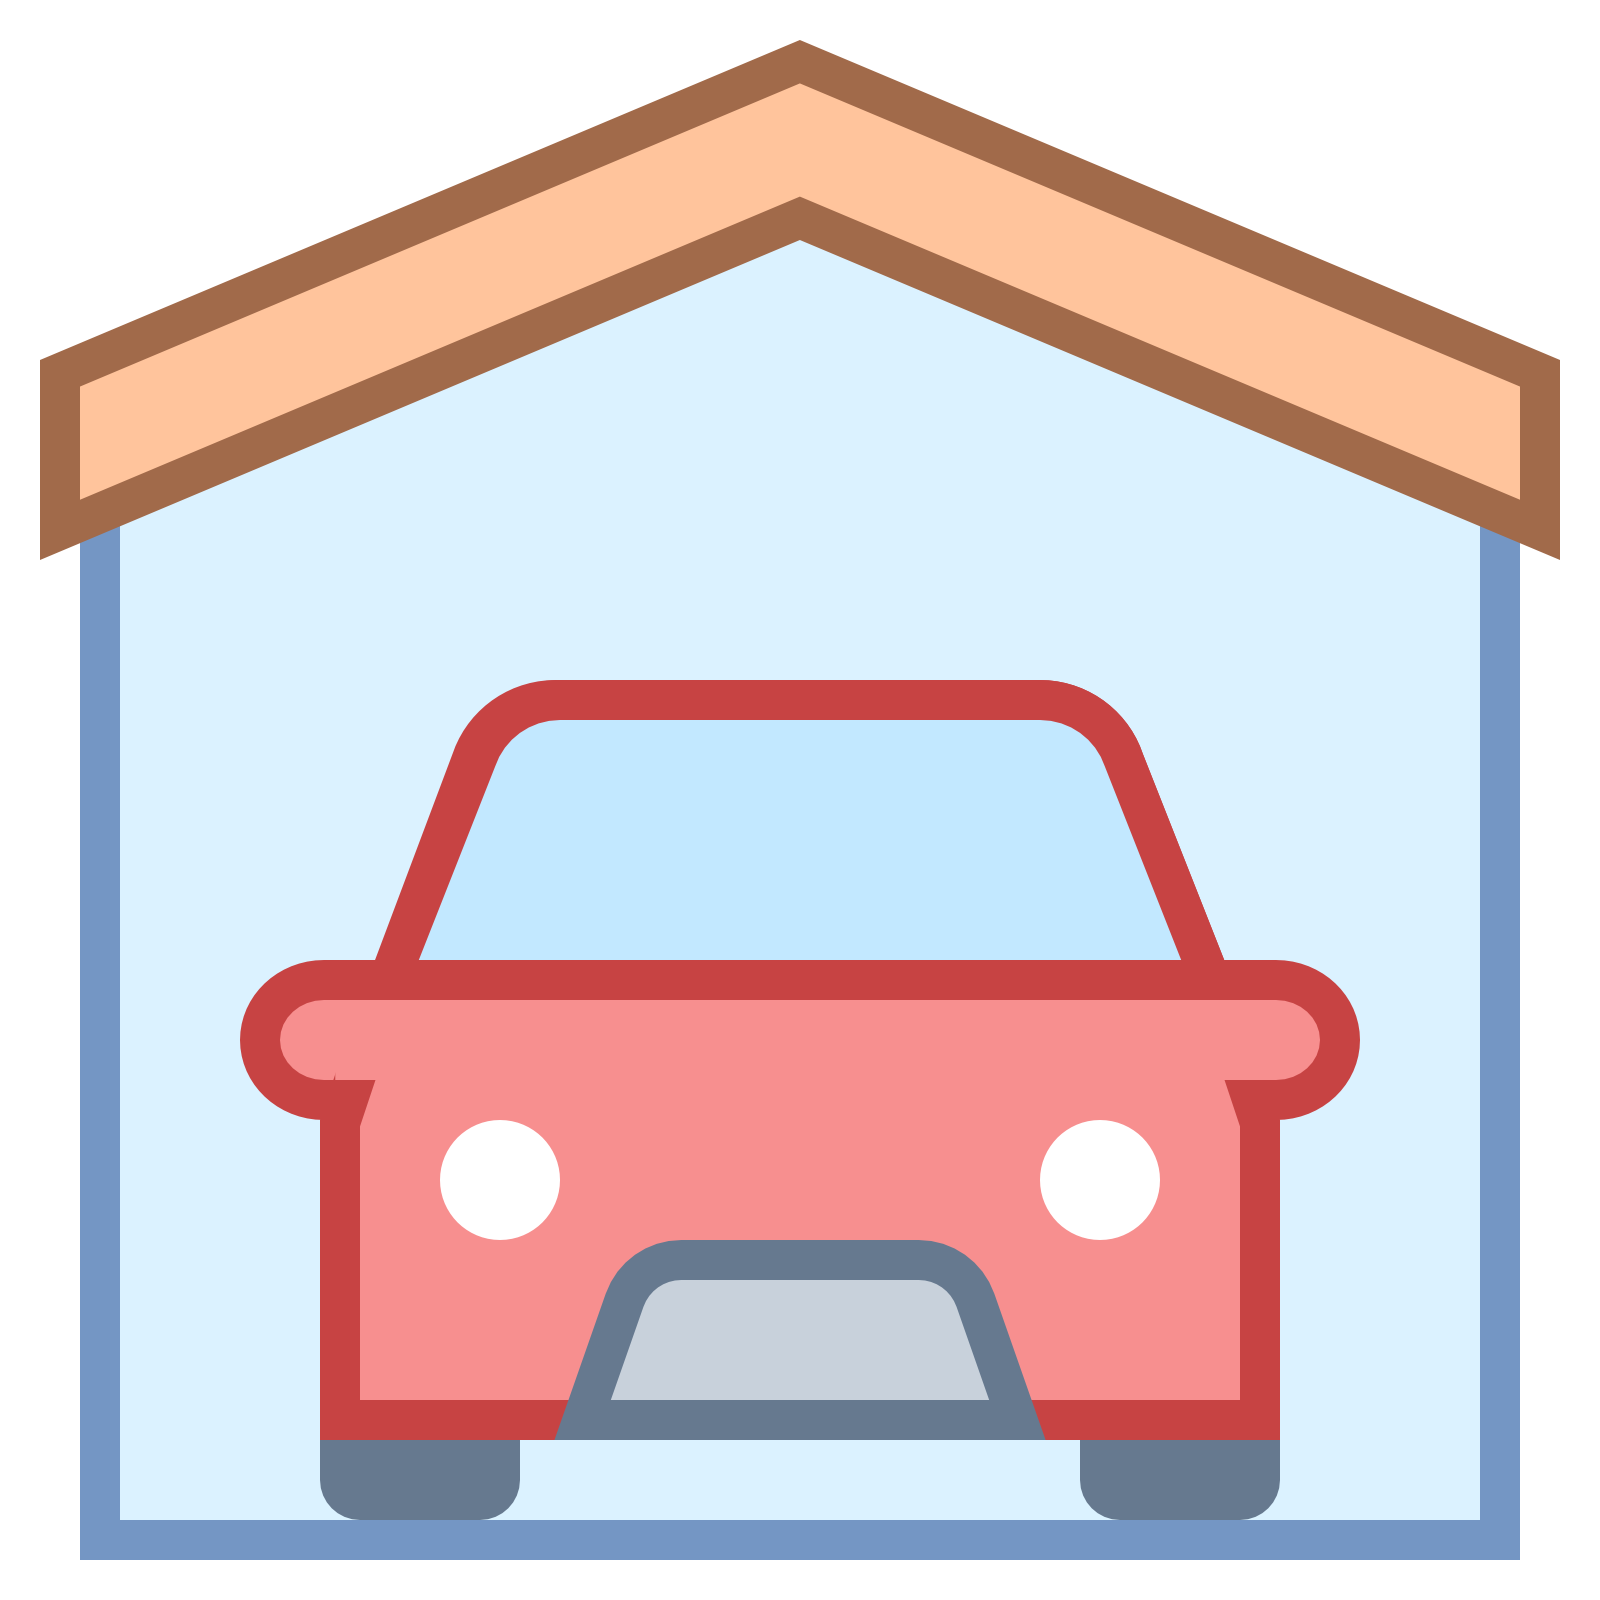 Garage clipart auto garage, Garage auto garage Transparent ...